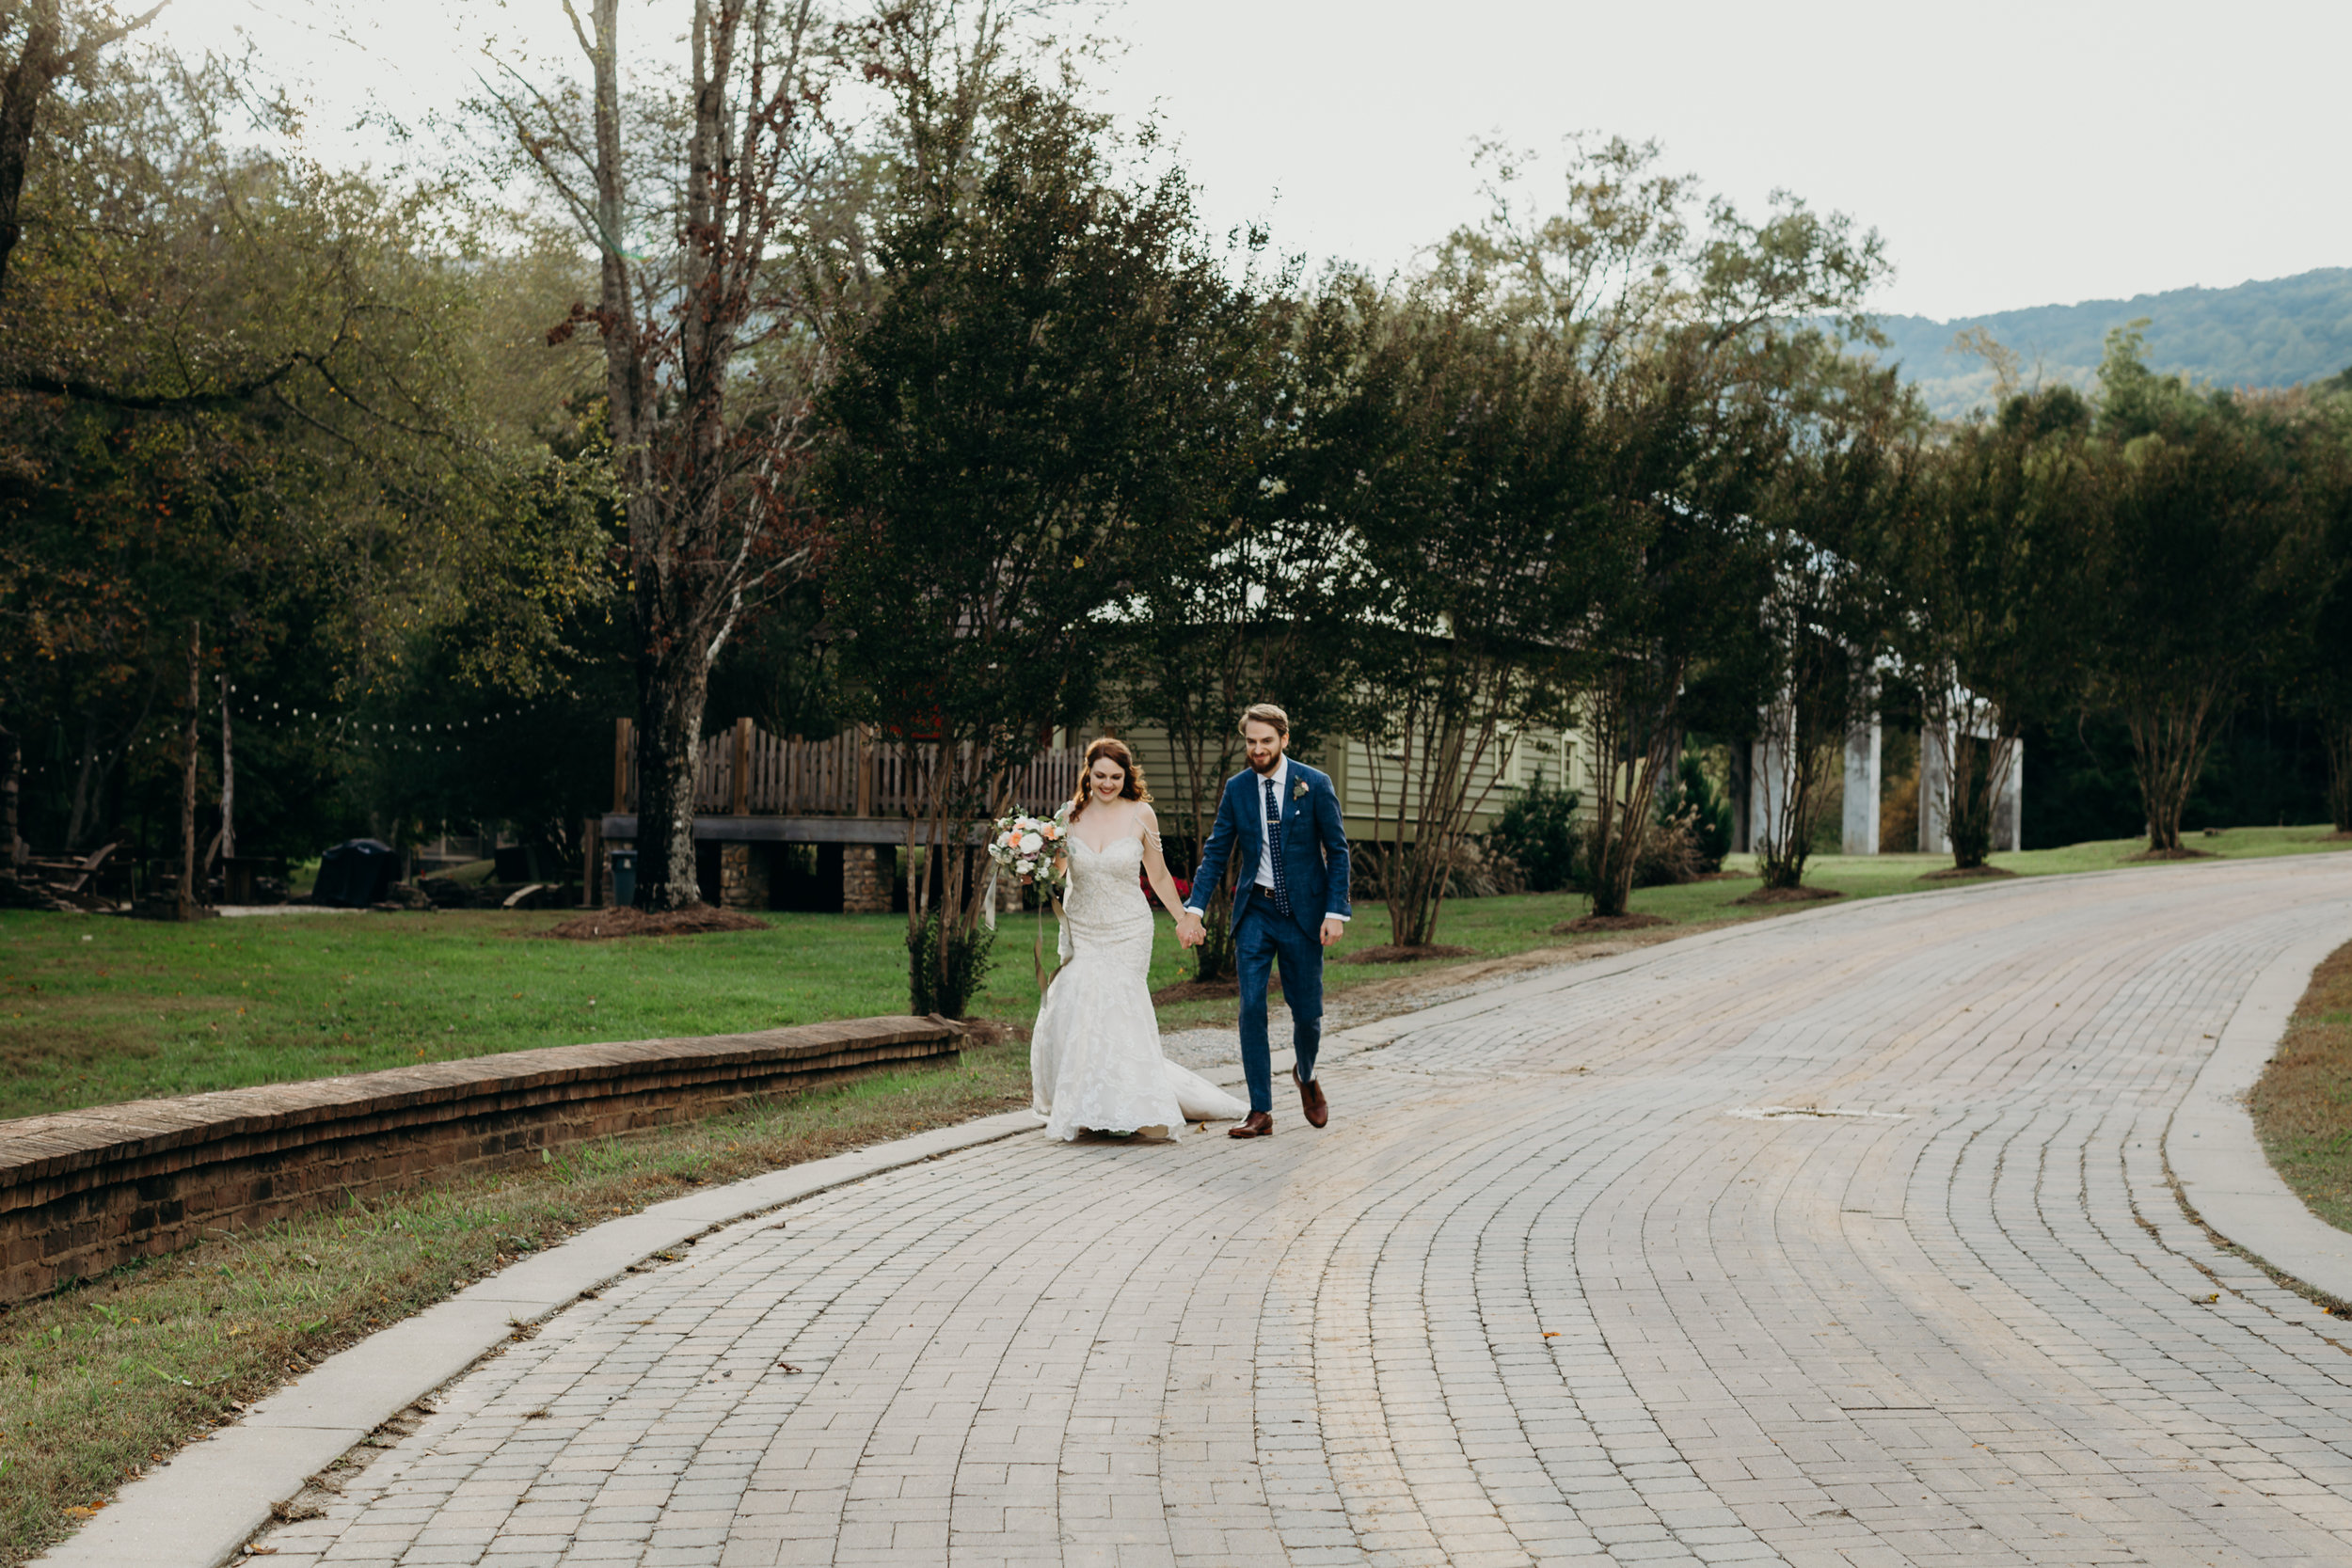 Gianna Keiko Atlanta Chattanooga Destination Wedding Portrait Photographer-63.jpg